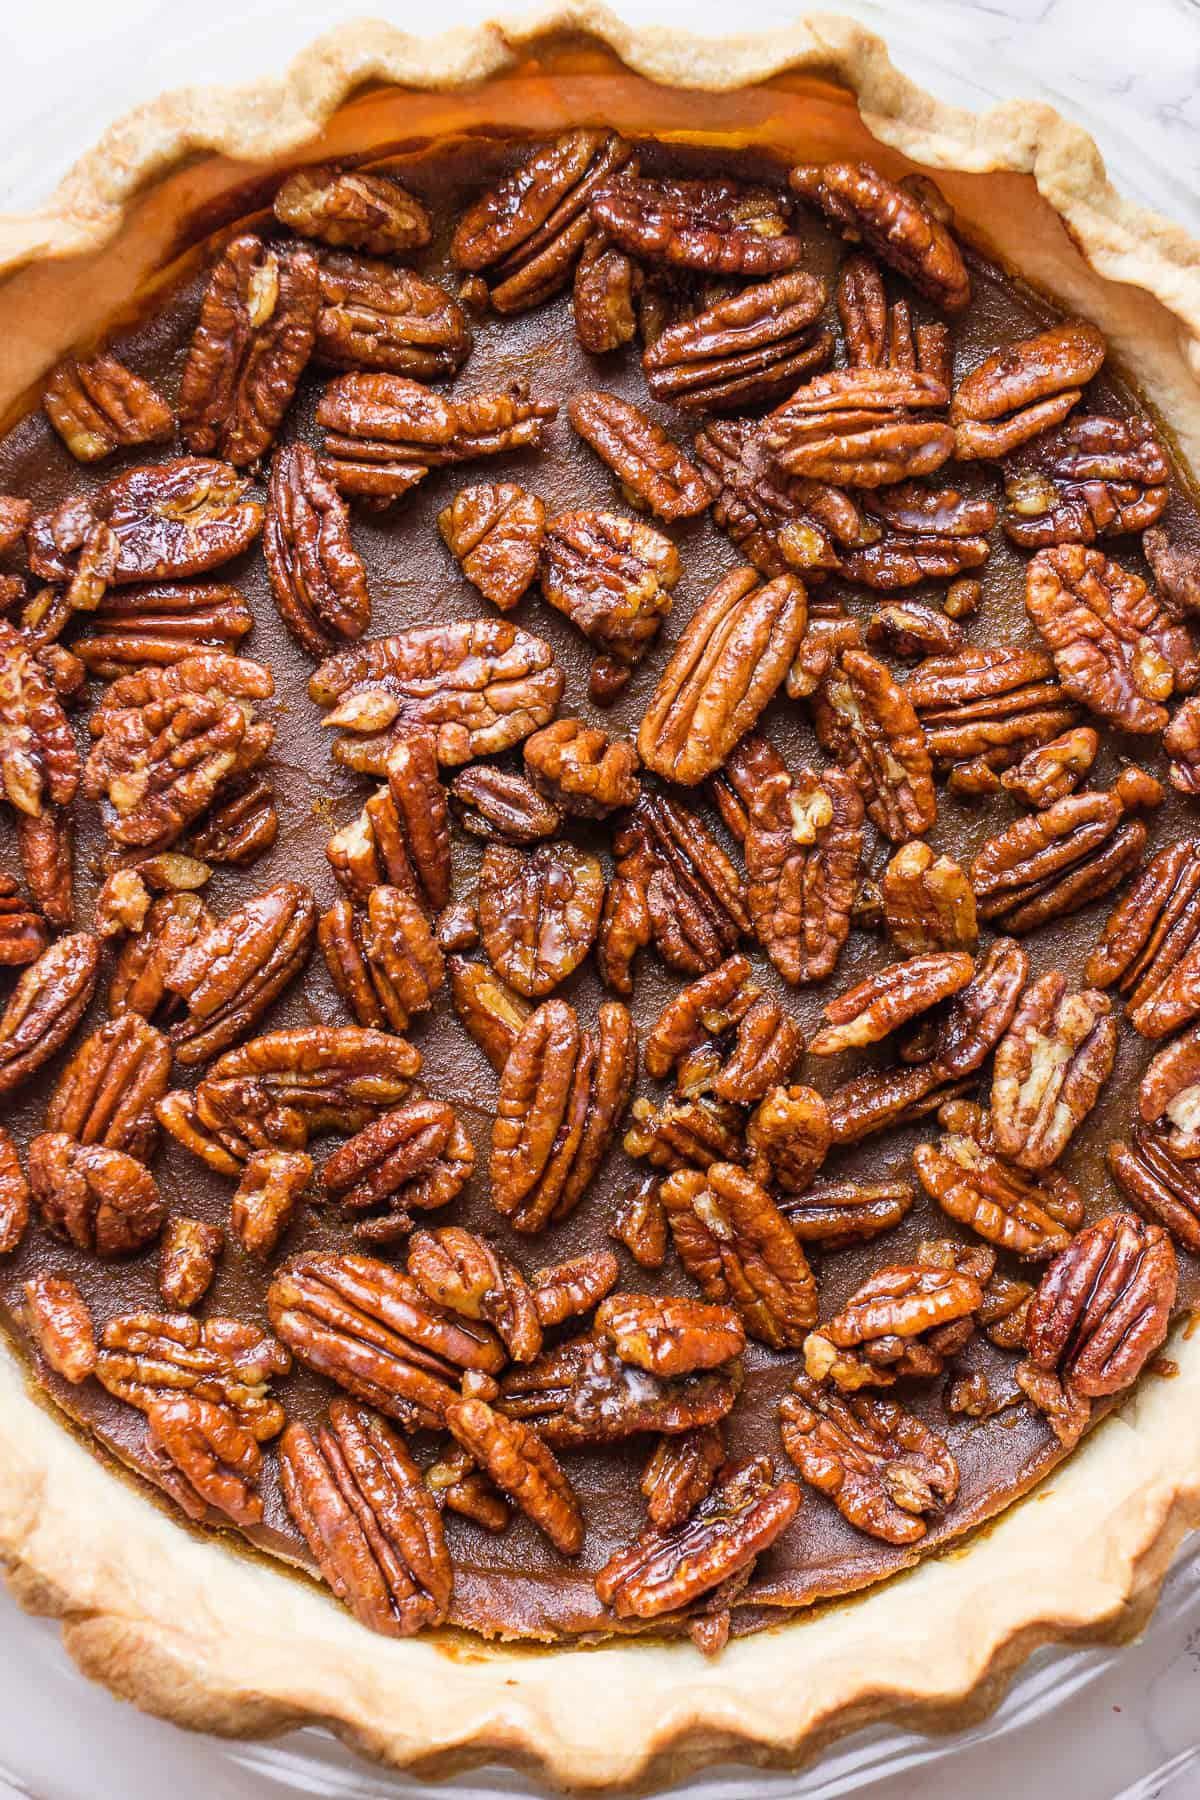 Egg-Free Pumpkin Pie topped with pecans